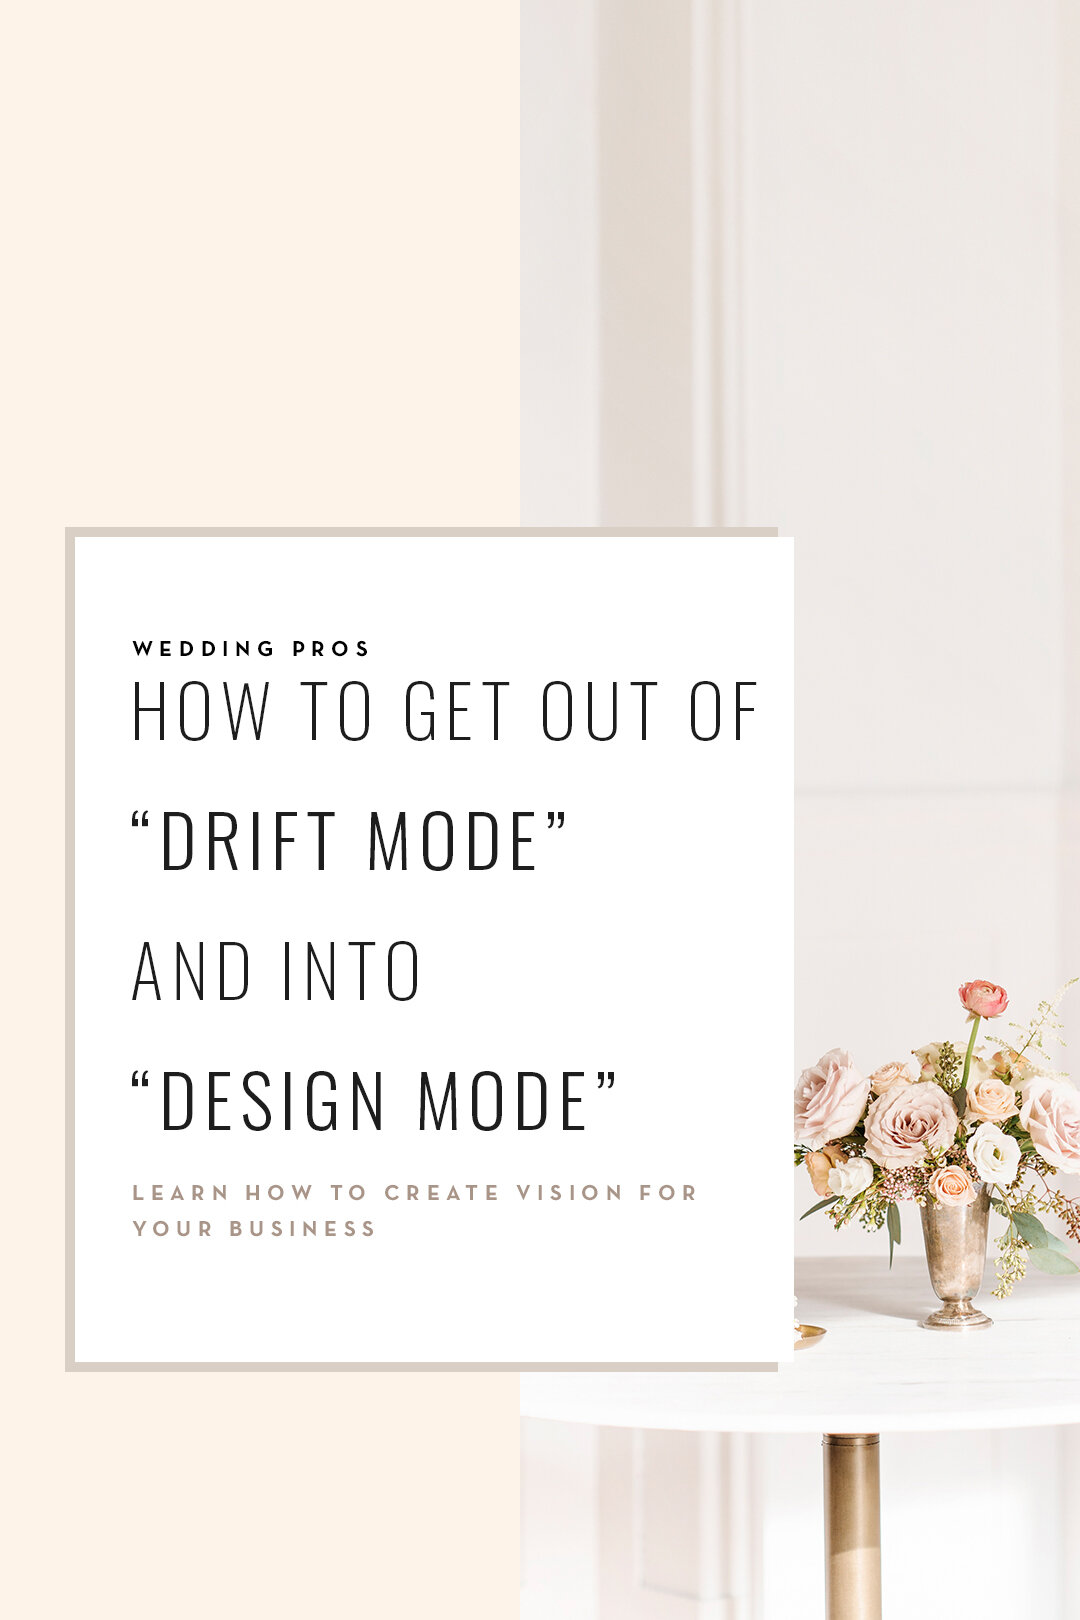 Are you a wedding pro looking to design a business that you love? Learn how to get out of 'drift mode' and into 'design mode' by casting a vision for your biz–and then building the strategy to make it come to life. This wedding planner business plan will help you design a business that you love–and one that can flourish–even in uncertain times.